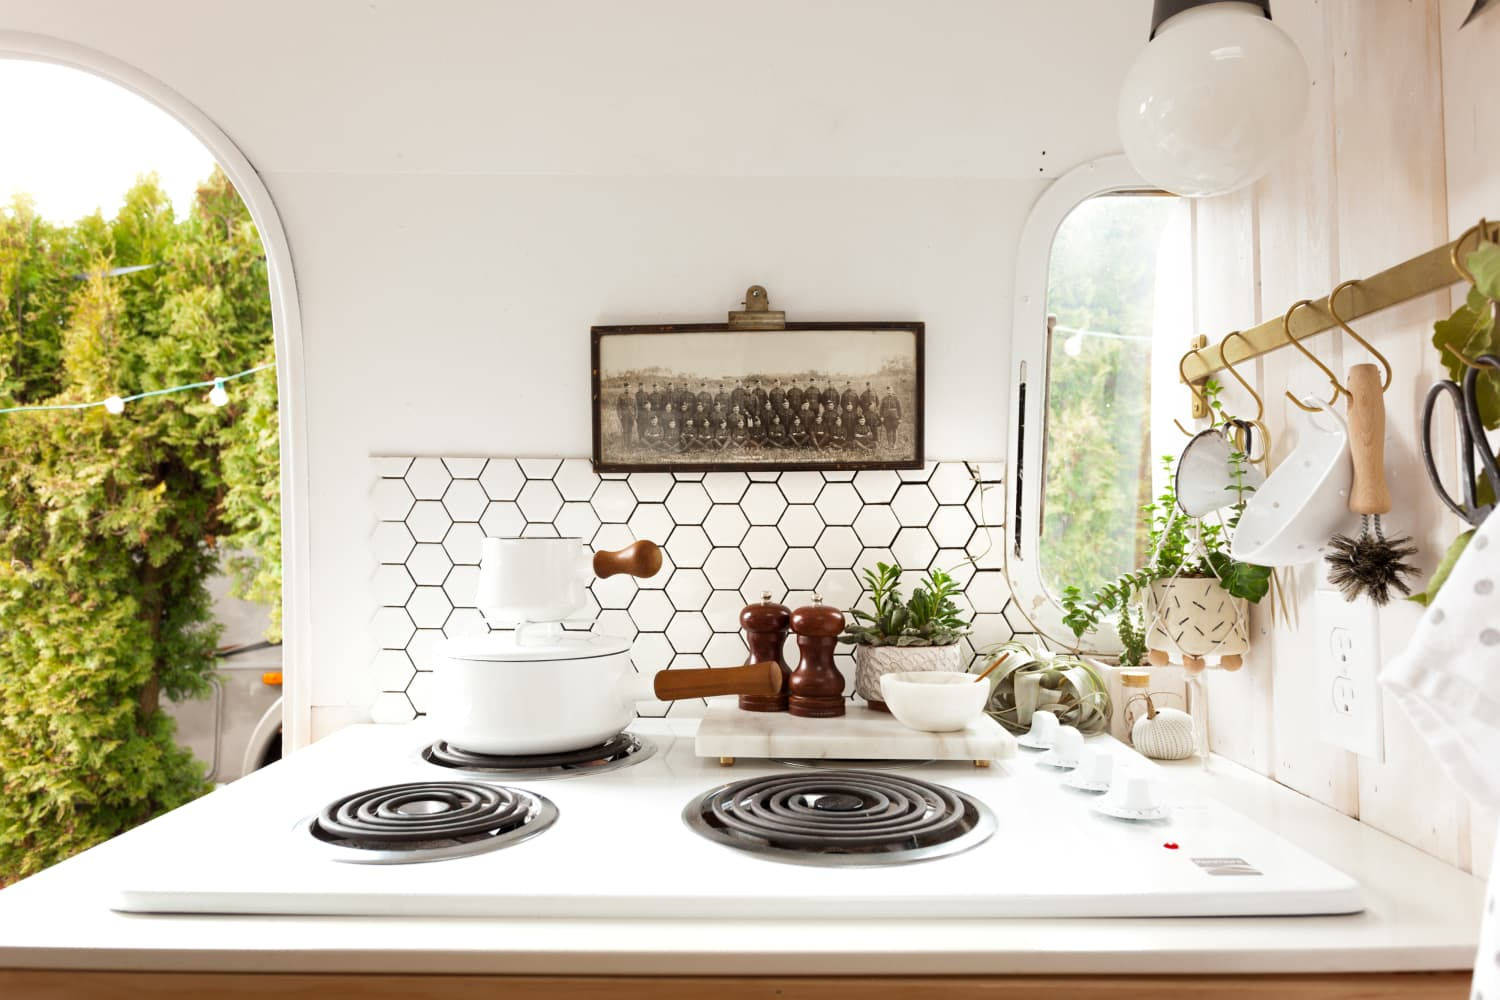 35 of the Very Best Ideas and Solutions for Your Small Kitchen